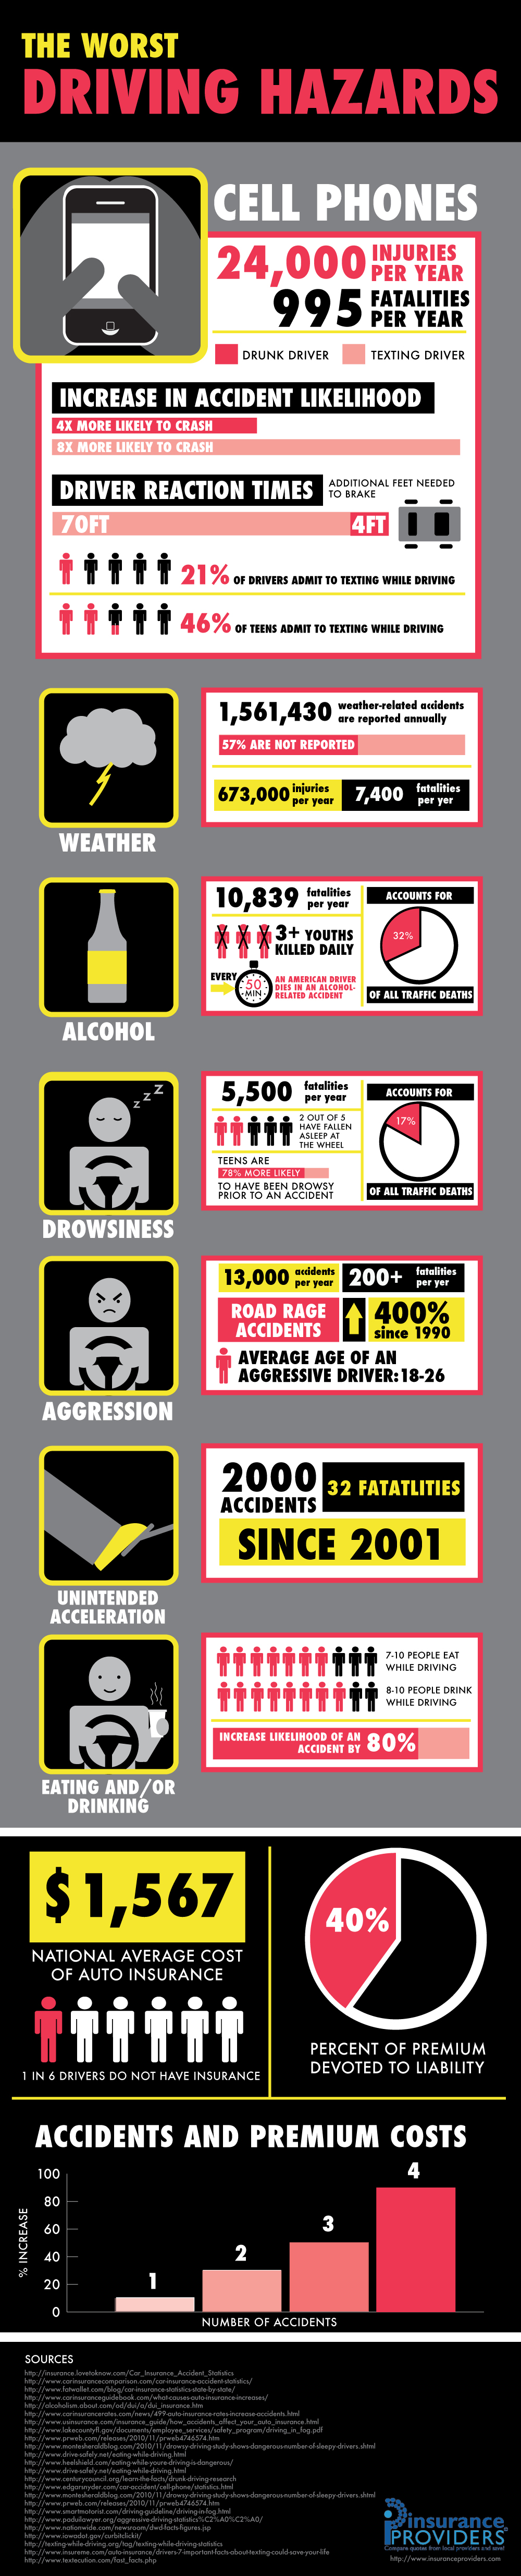 Drinking and Driving, Cell Phones and Driving Statistics